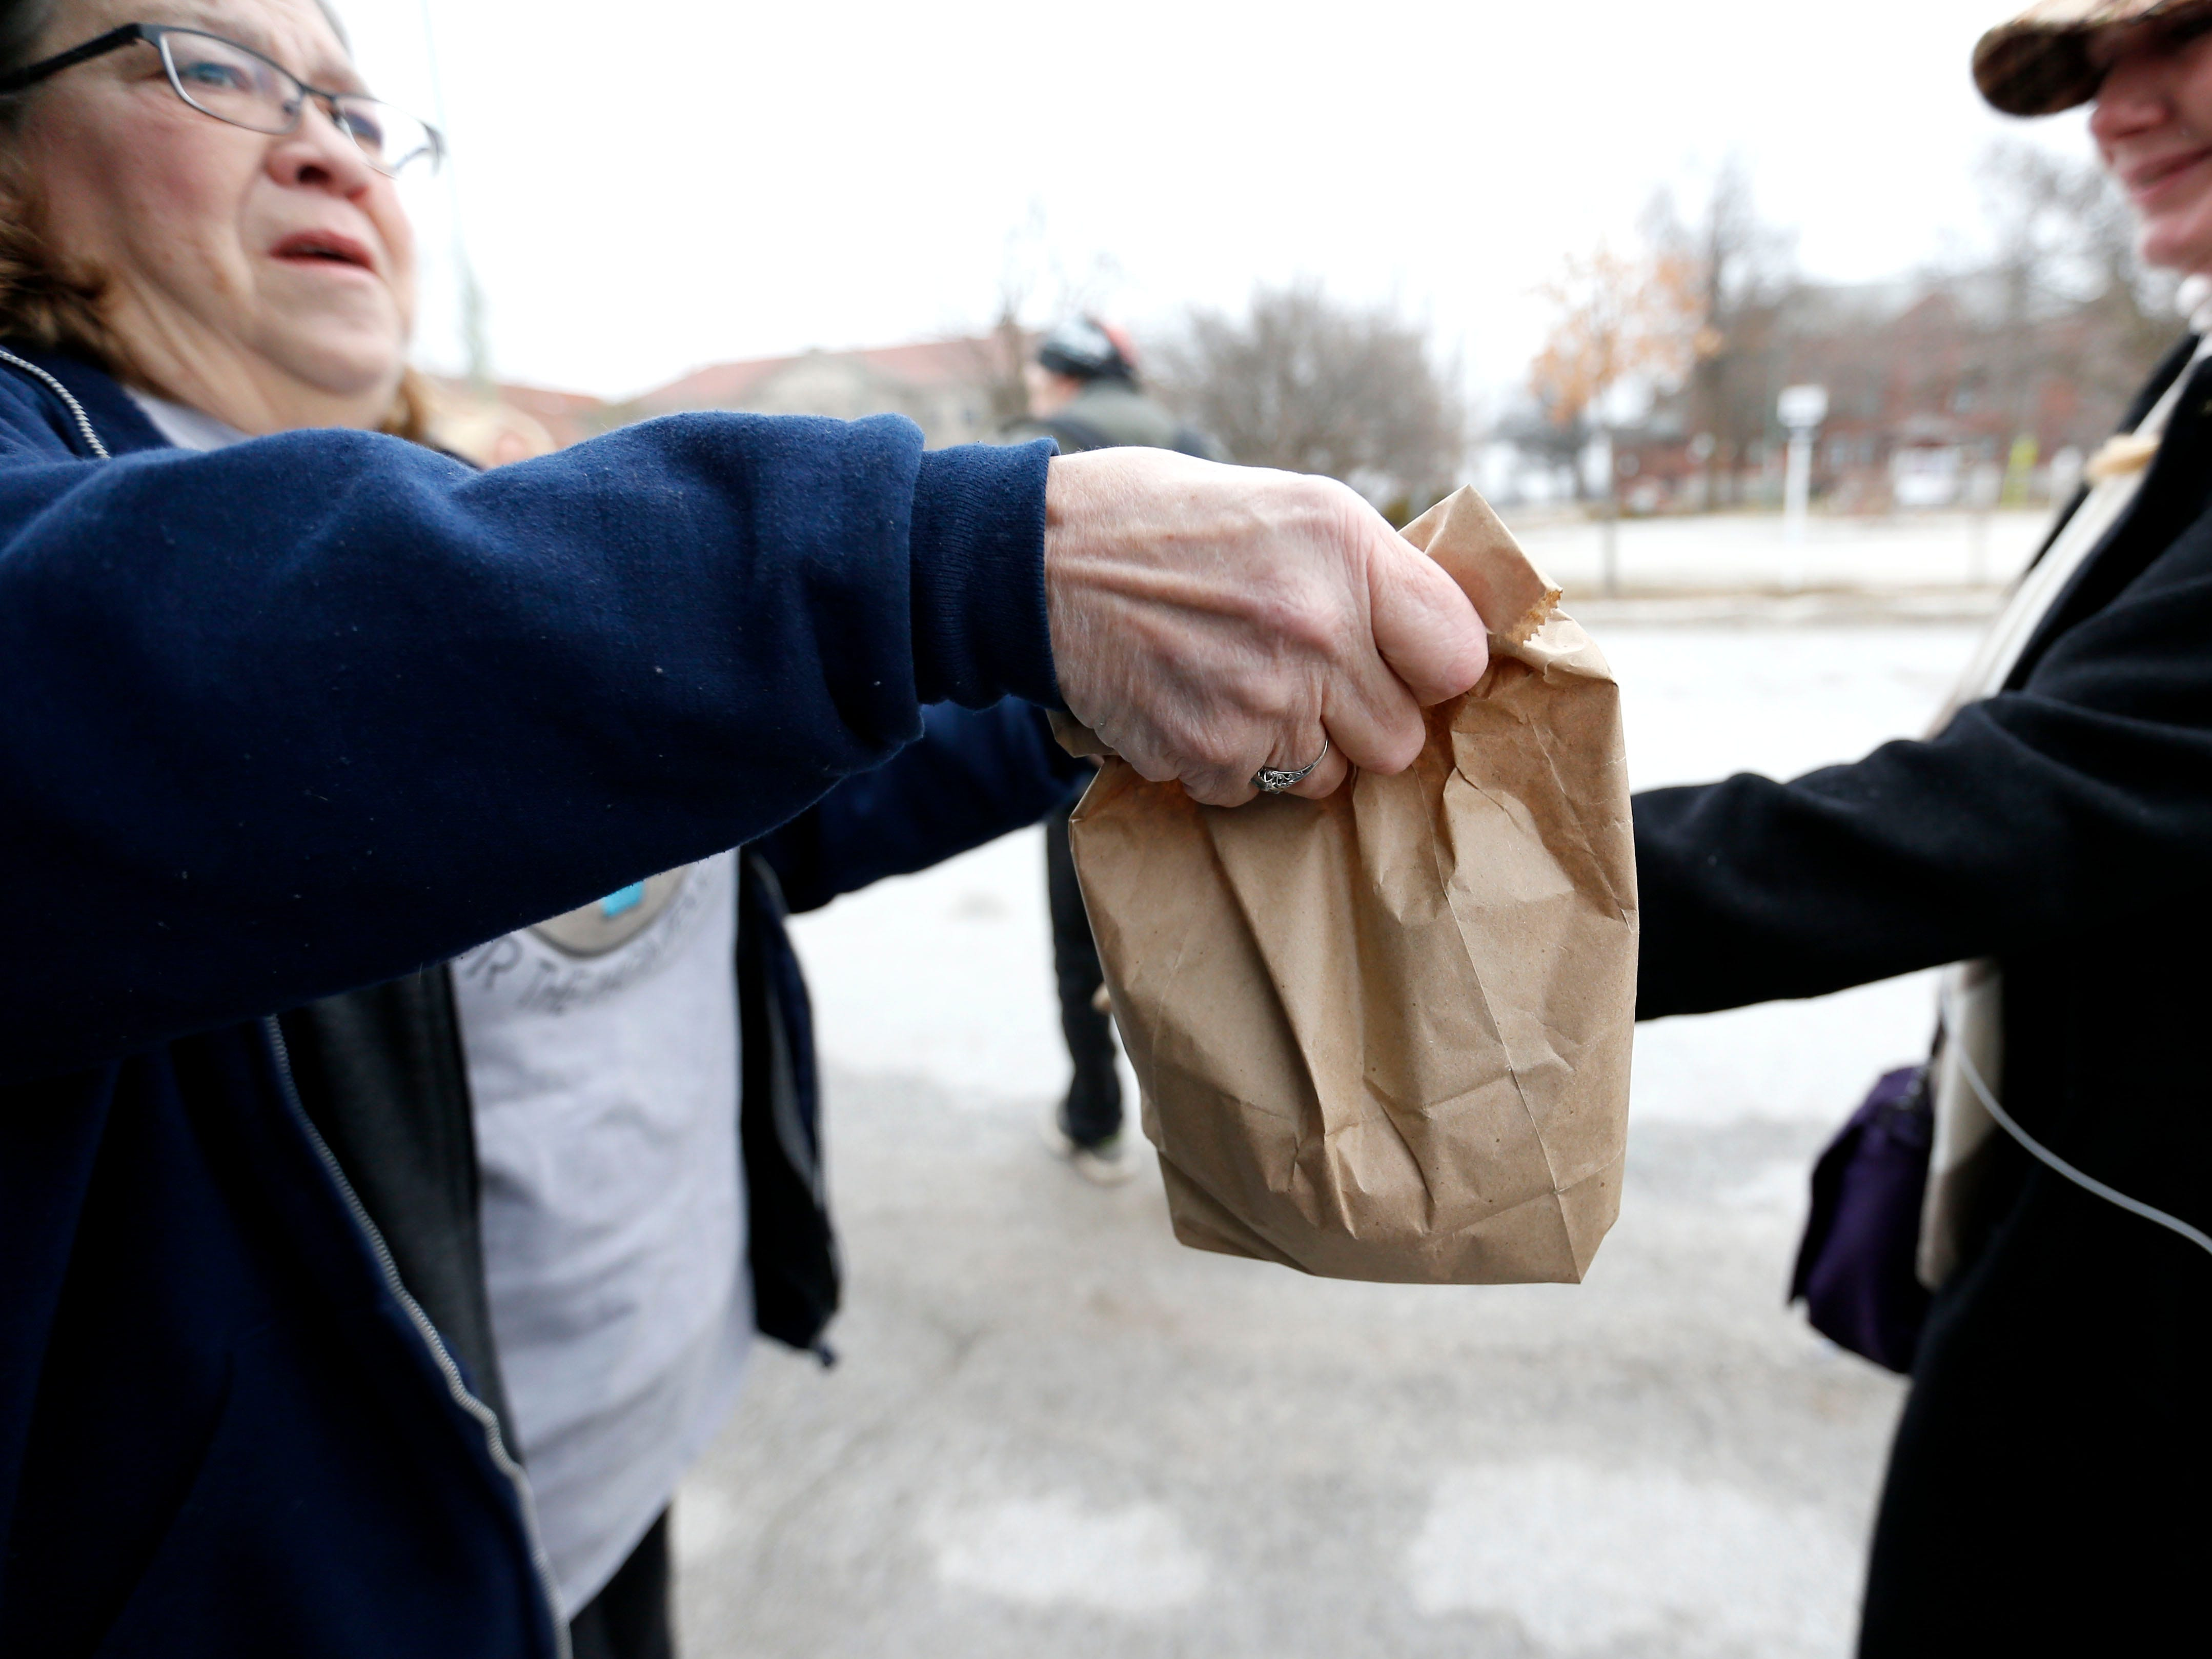 Marti Knaur hands out sack lunches to homeless people outside the Veterans Coming Home Center on Friday, March 1, 2019.